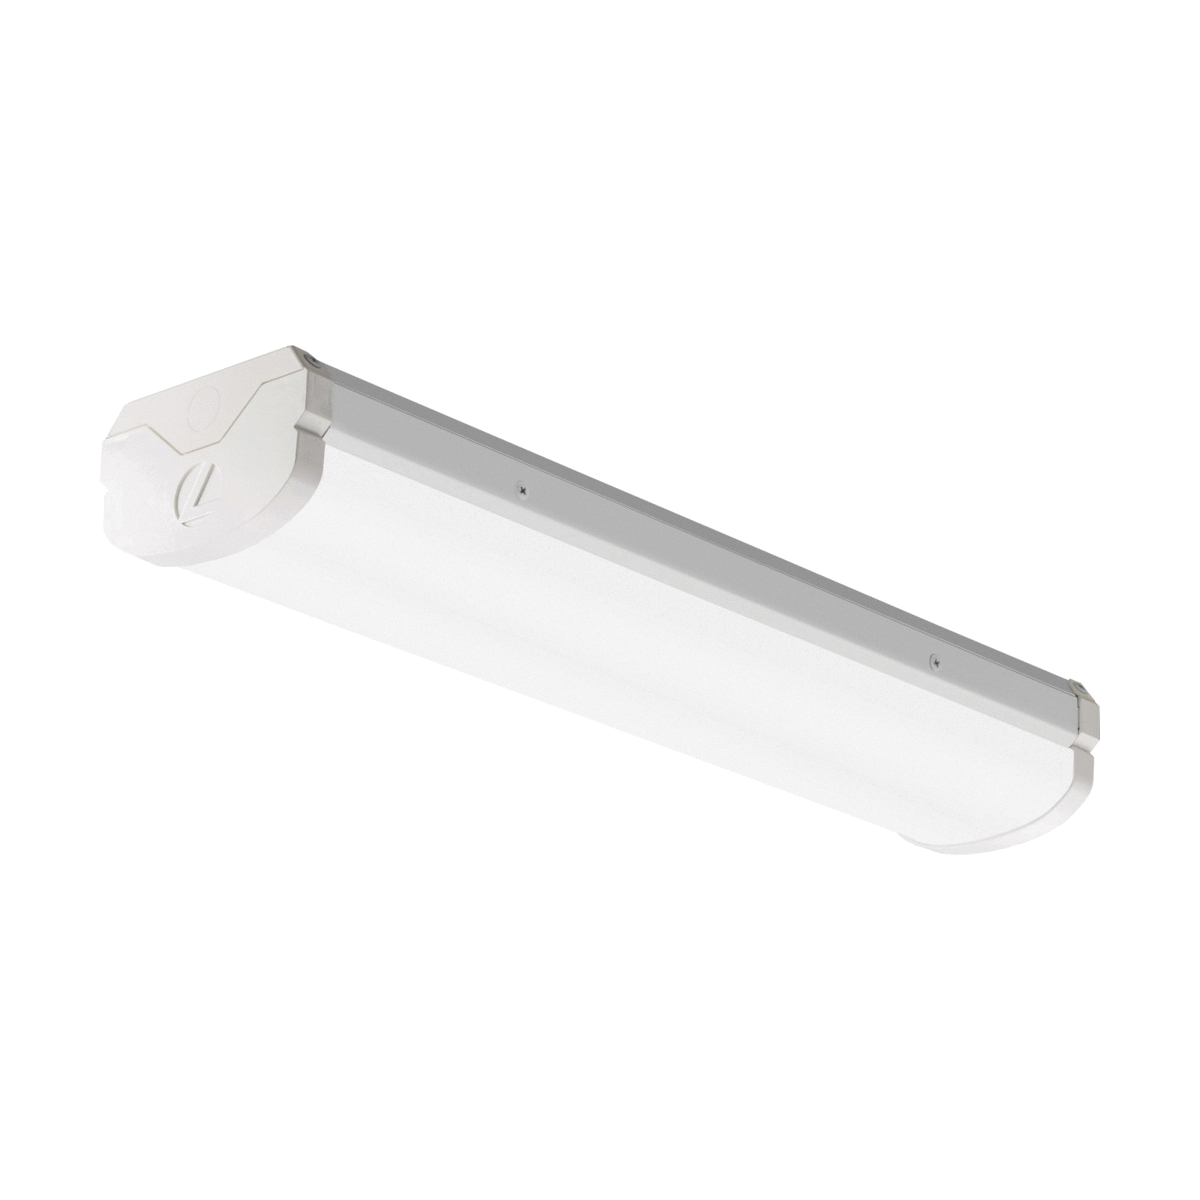 Lithonia Lighting®BLWP4 40L ADP LP840